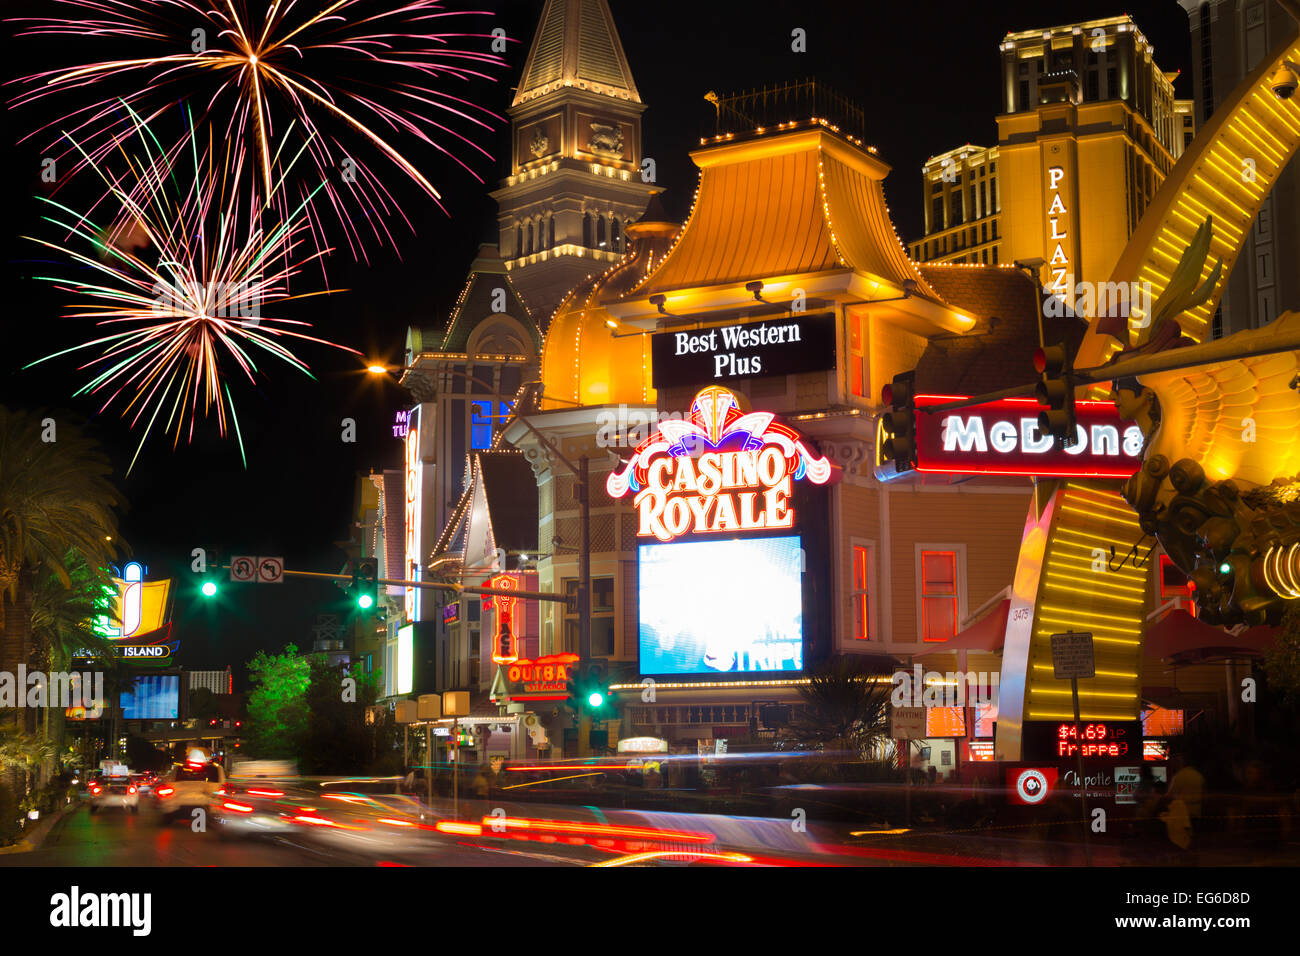 casino royale las vegas address